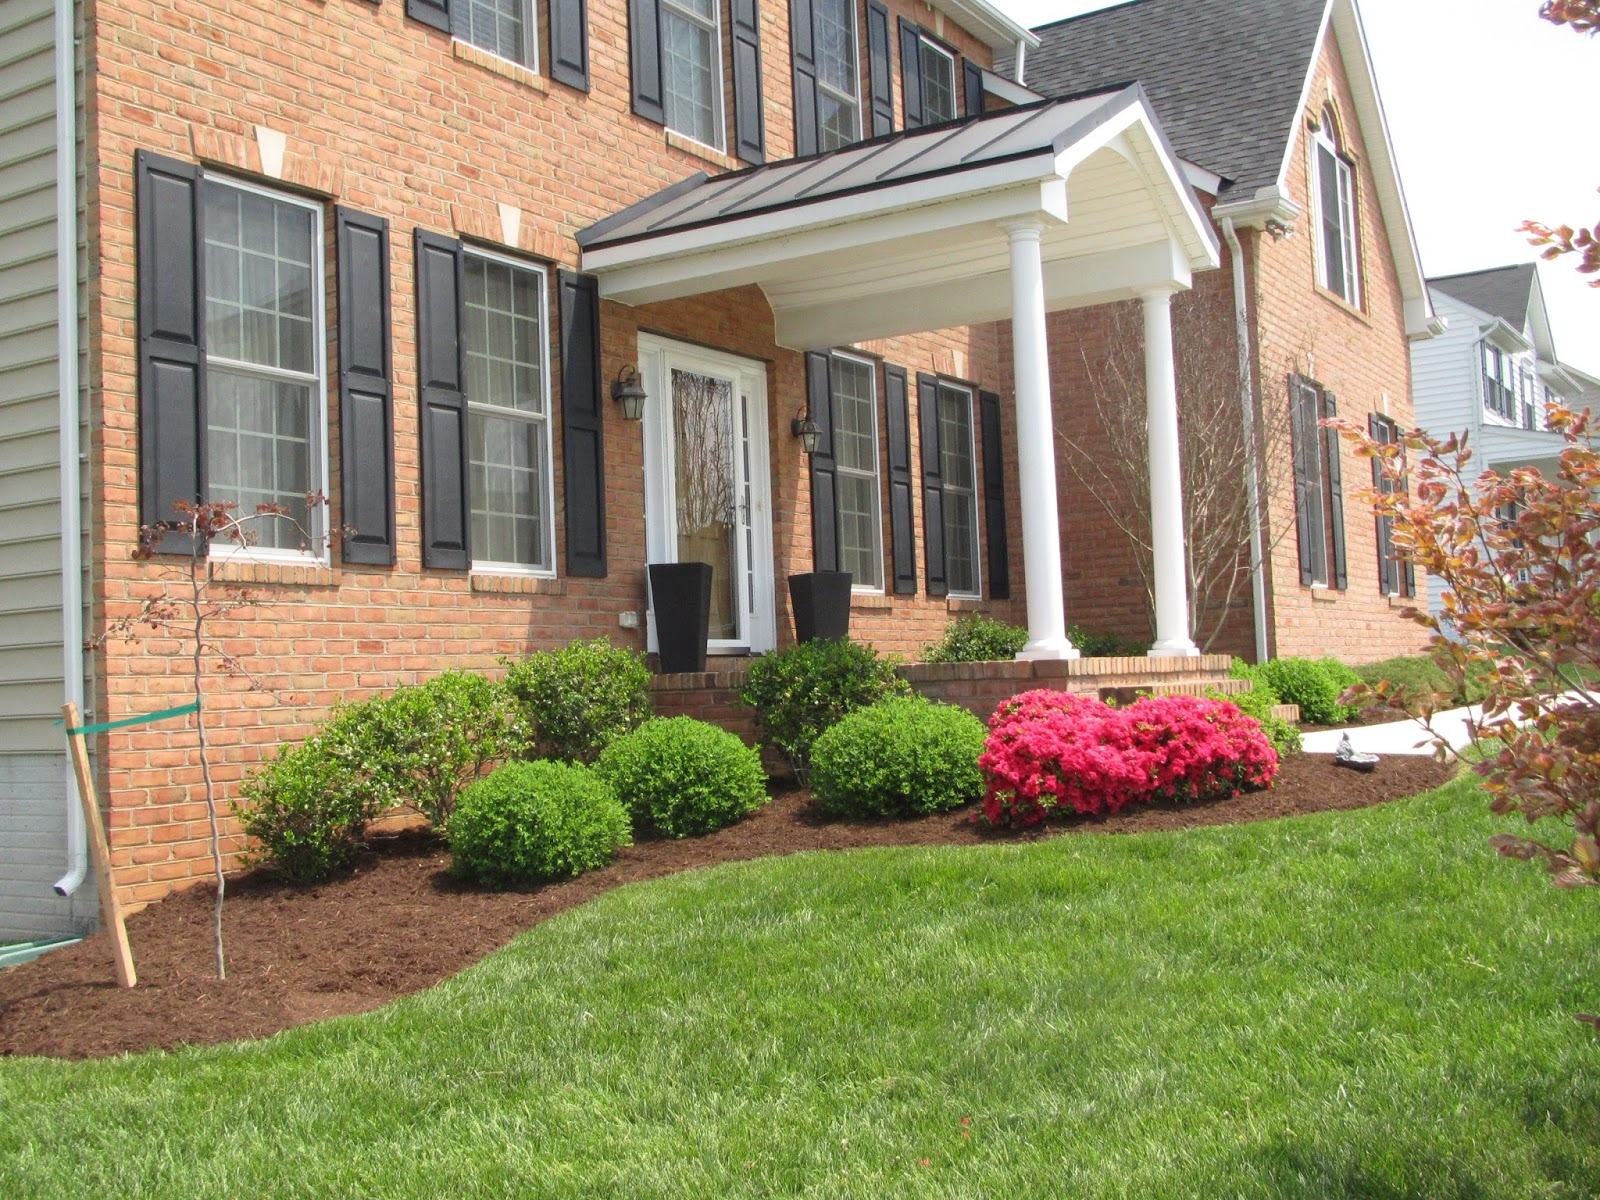 Groshs lawn service lawn landscaping new home in for Home landscaping services